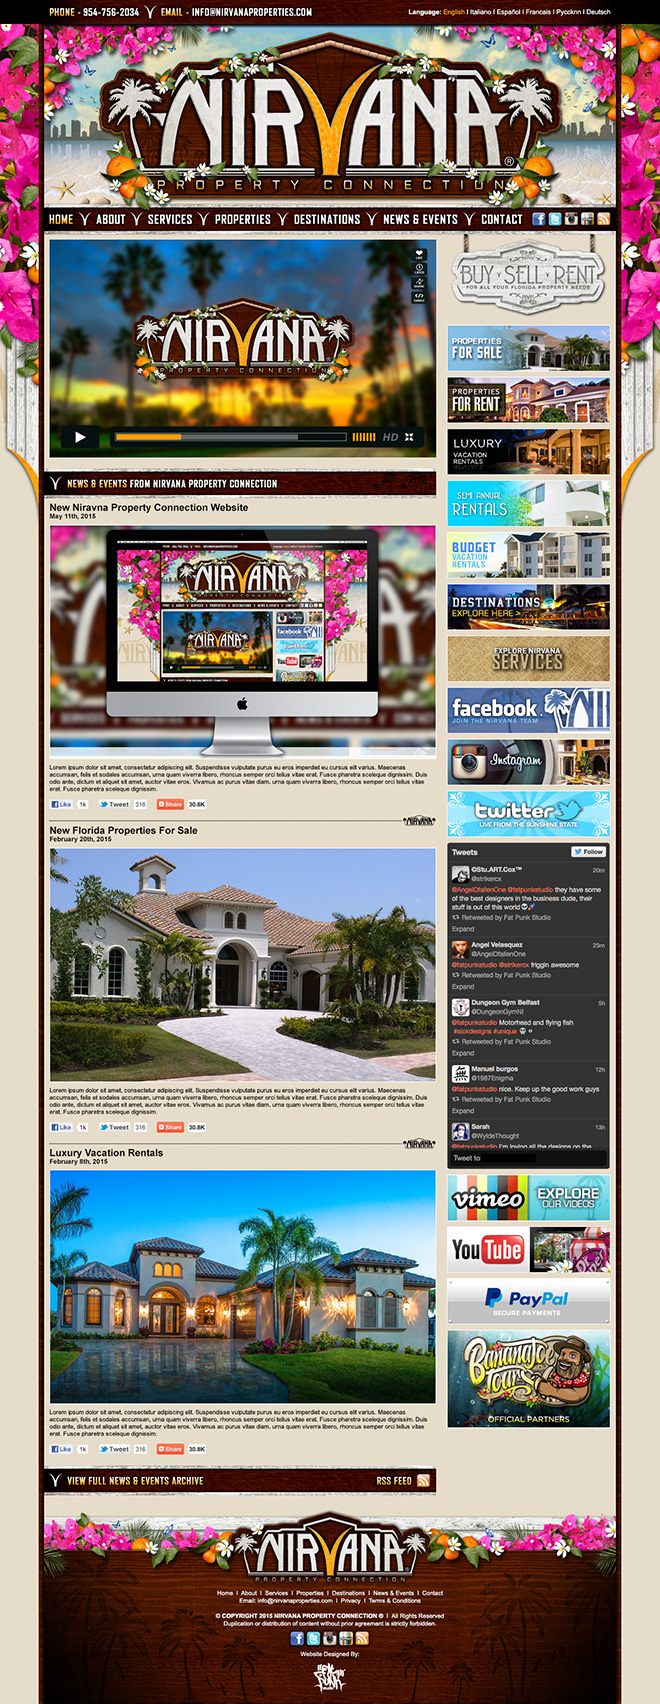 Beautiful bespoke website design for our new florida client nirvana property connection